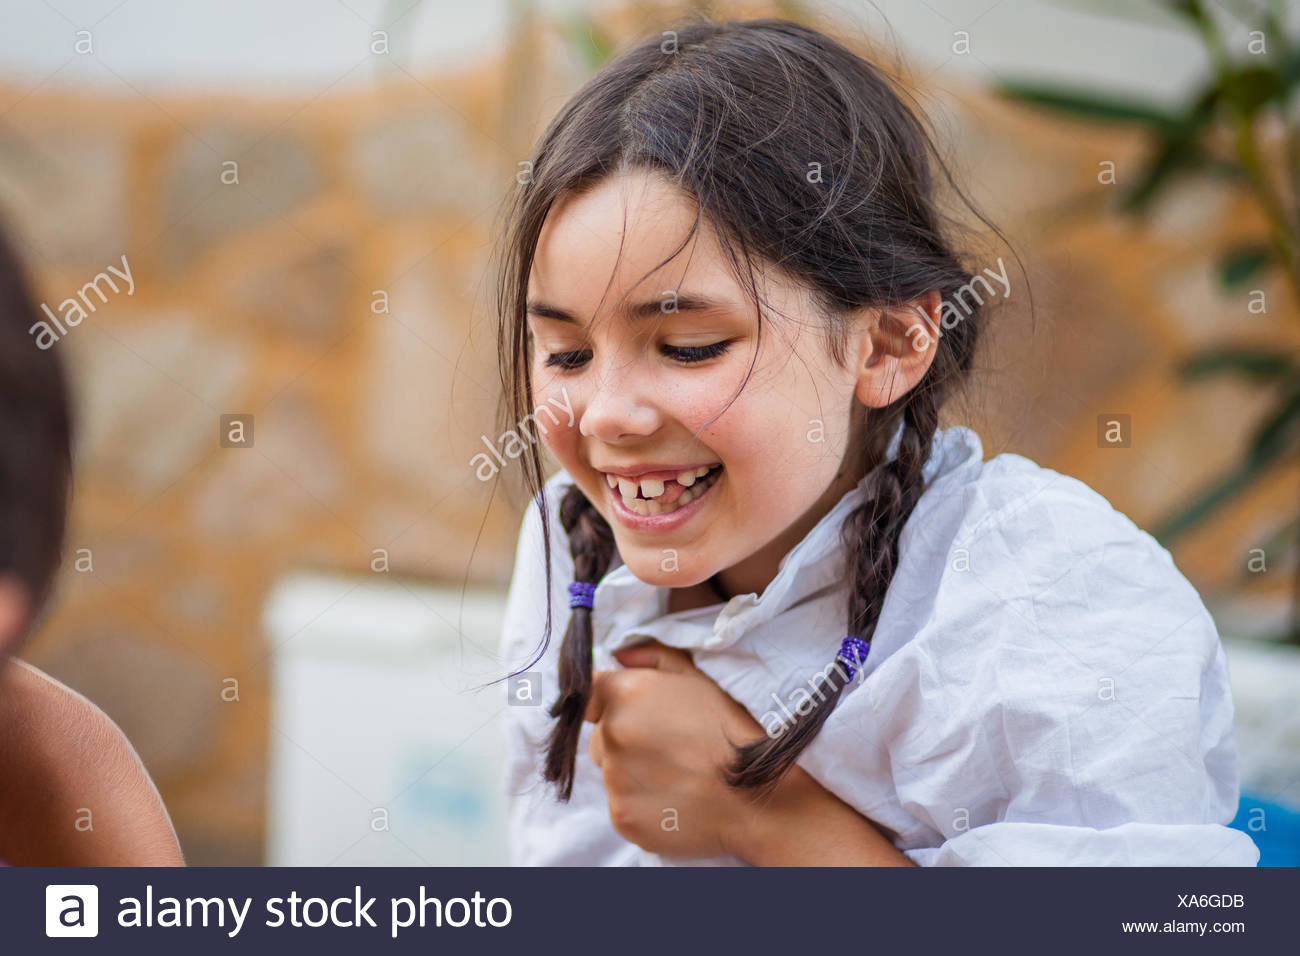 Little girl (6-7) with braids and white shirt laughing happily - Stock Image